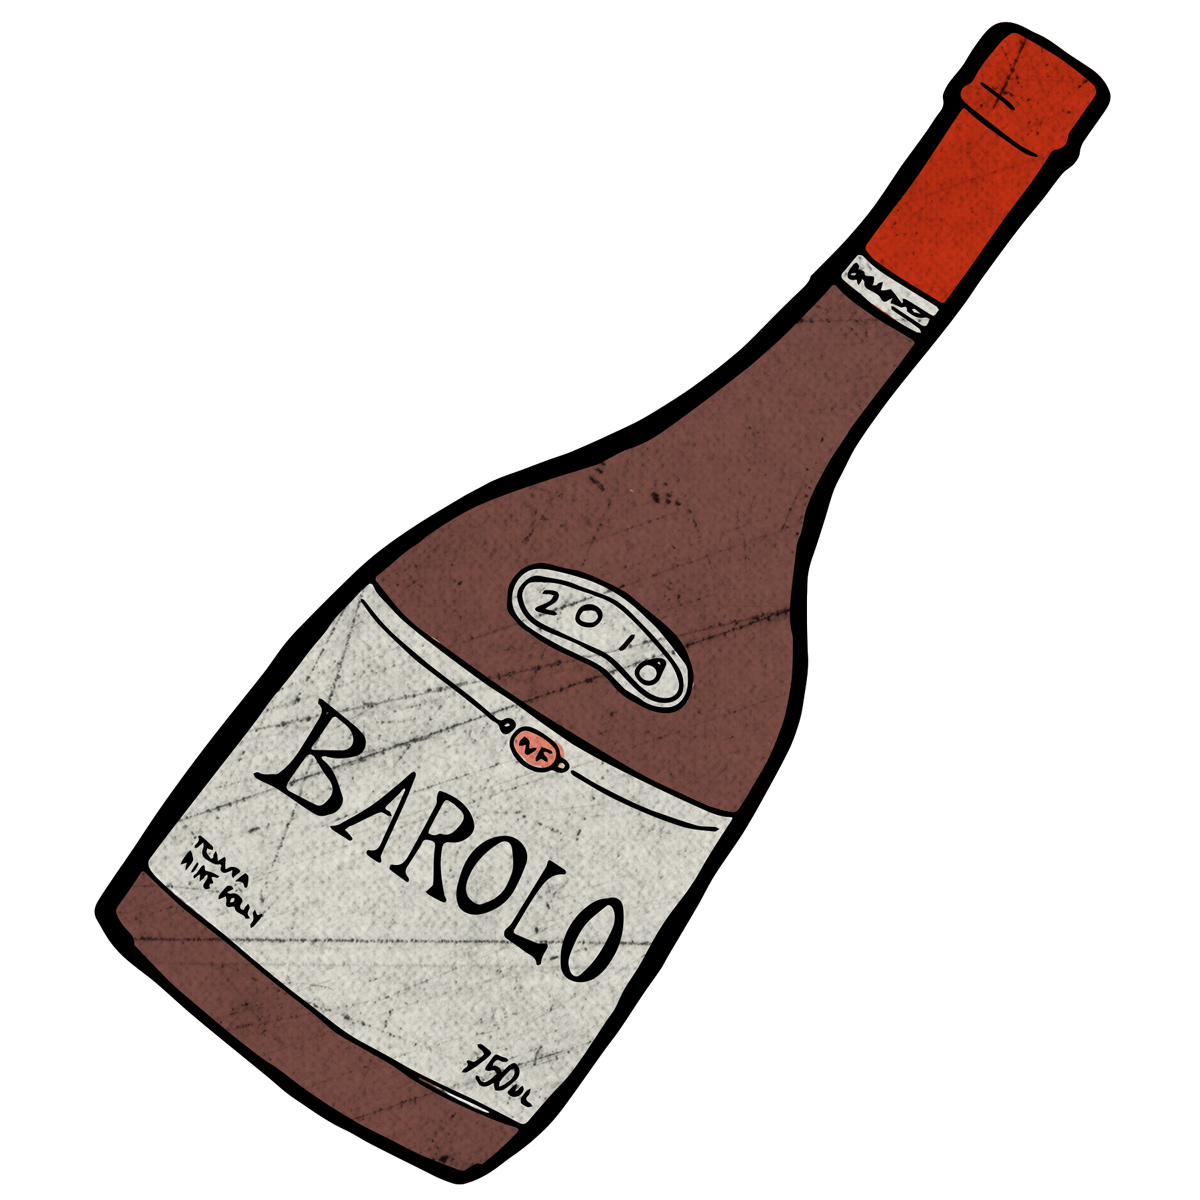 Barolo-winter-illustration-winefolly